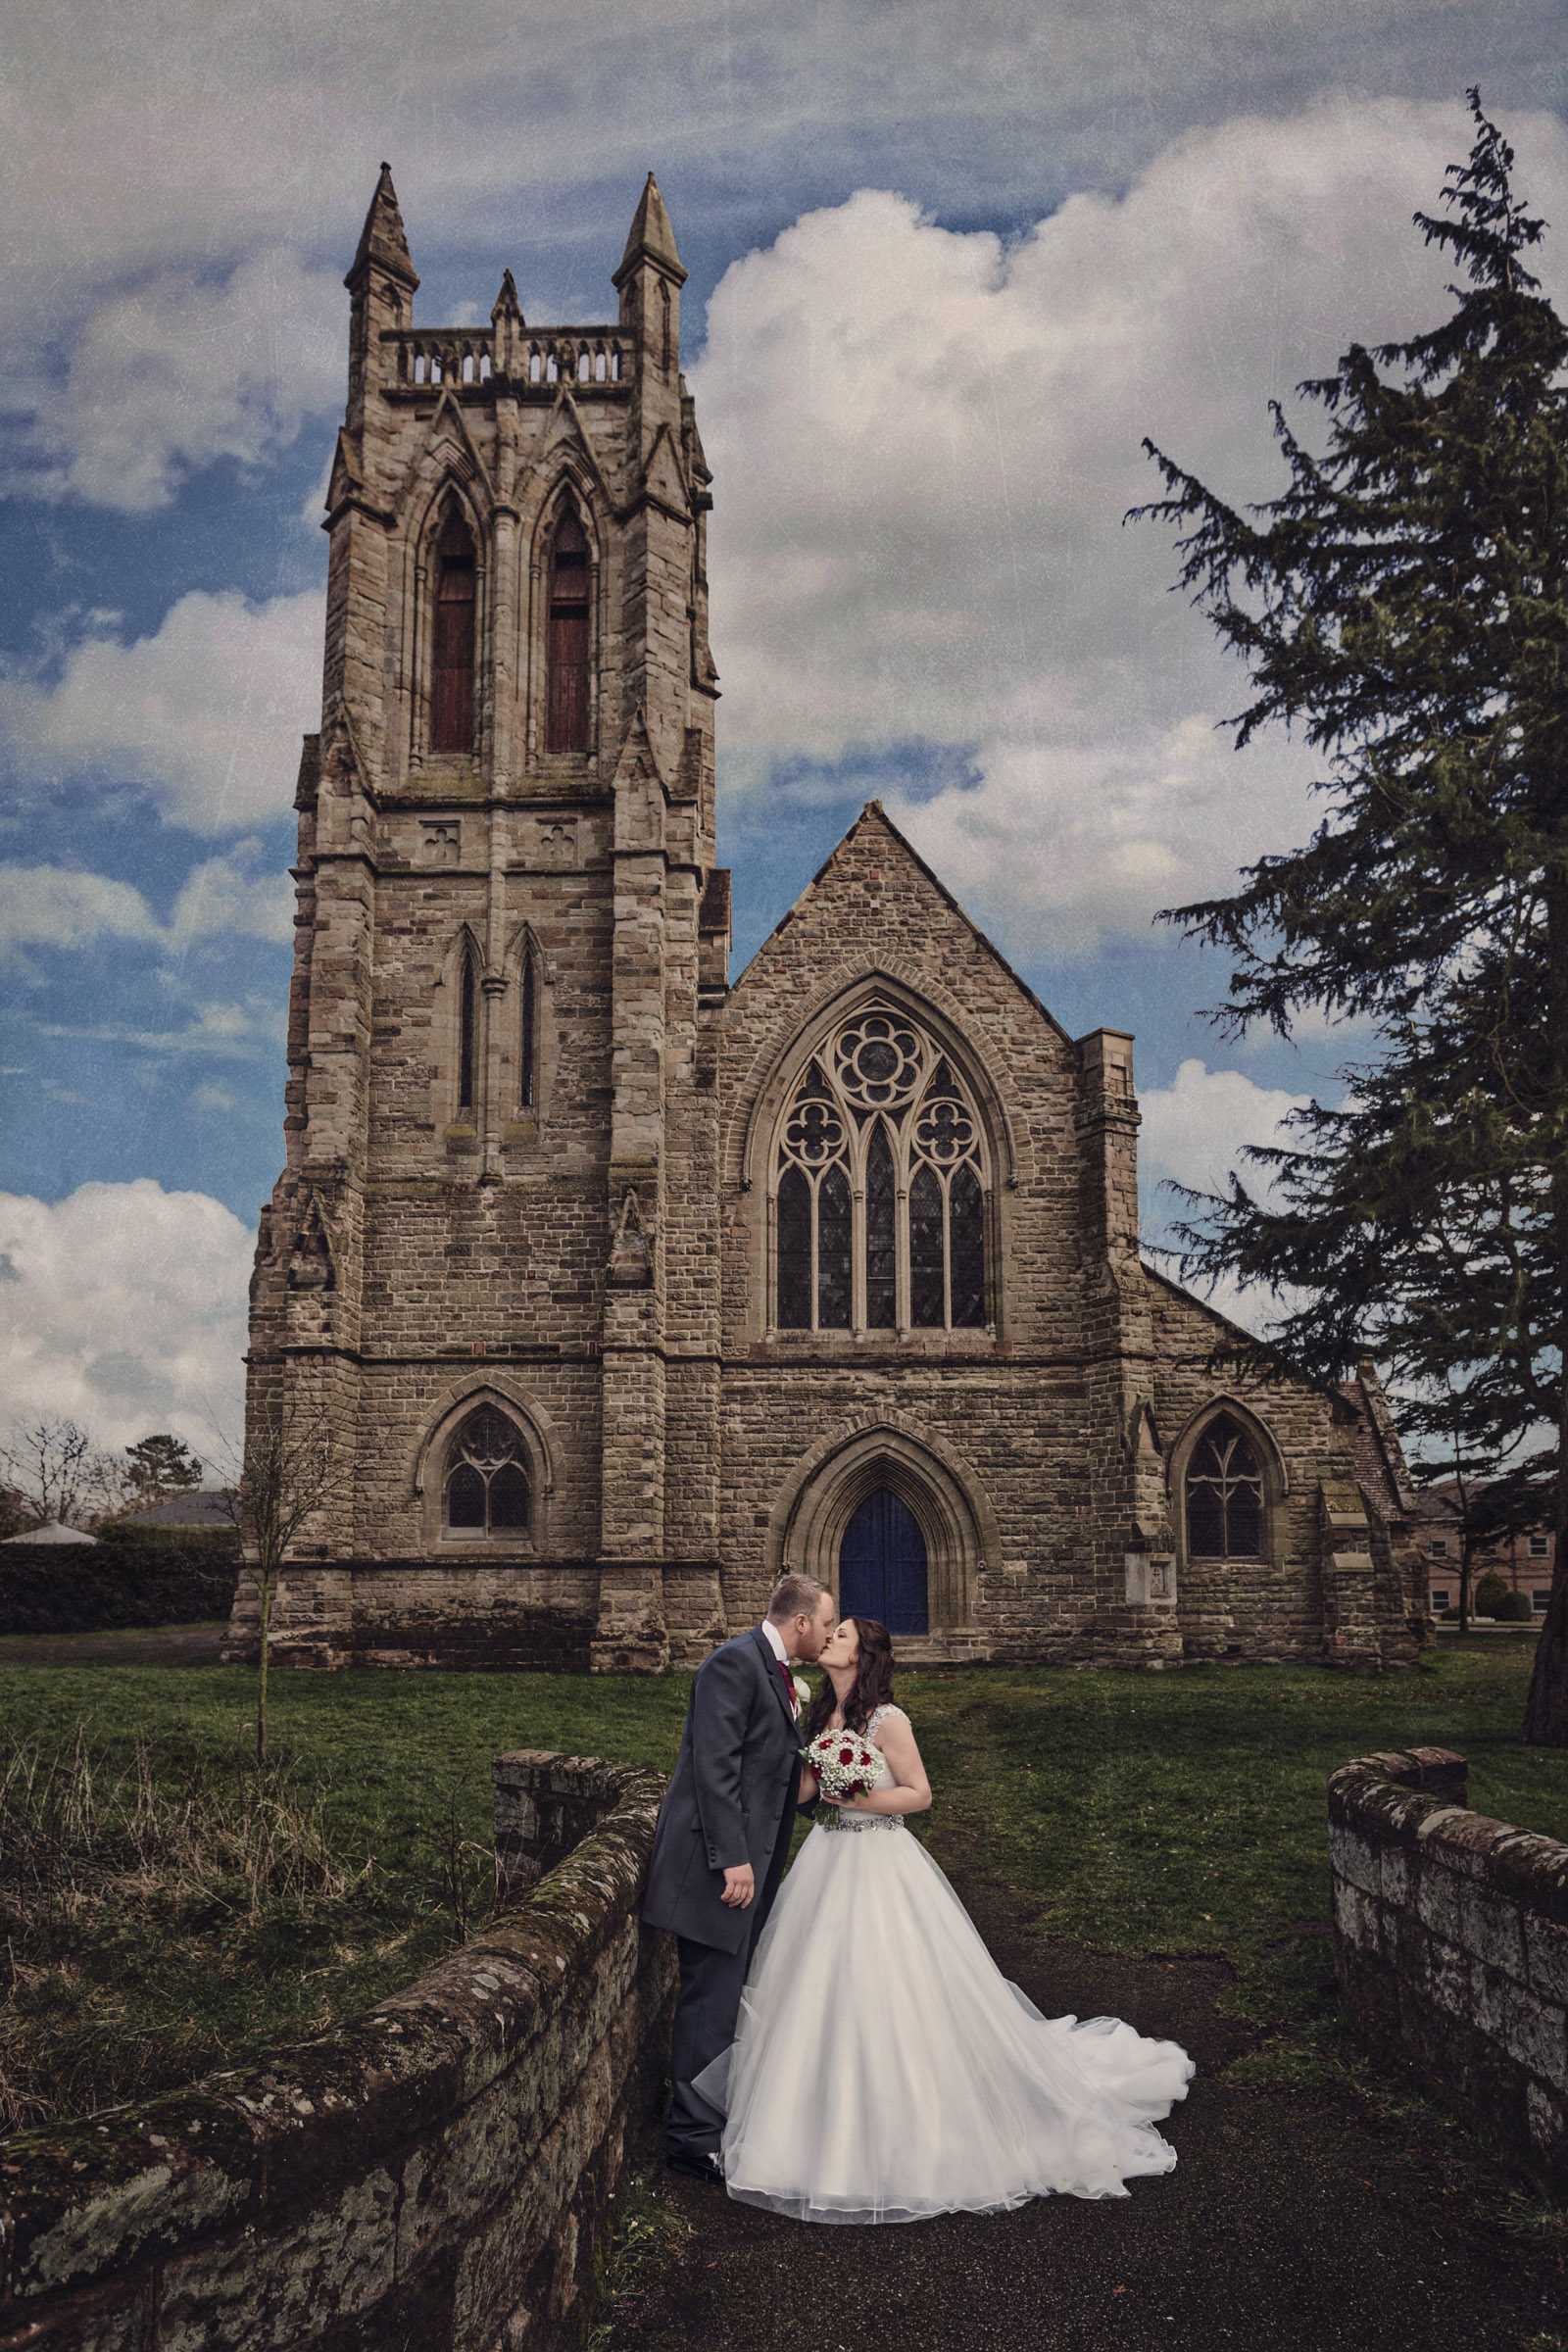 Wedding at All Saints Church in Bromsgrove